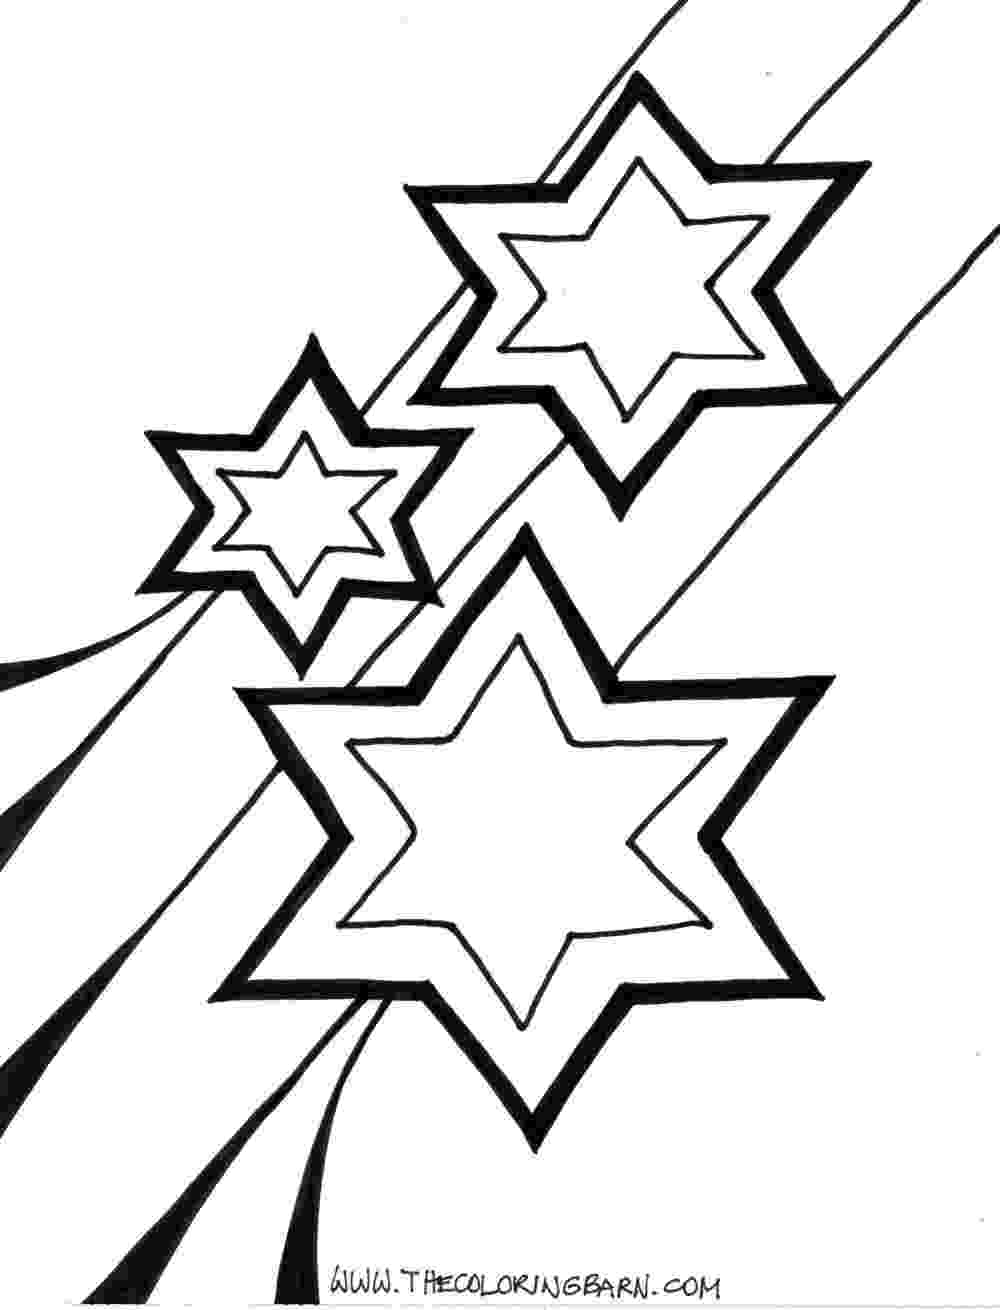 coloring page stars kindergarten worksheet guide pictures clip art line coloring page stars